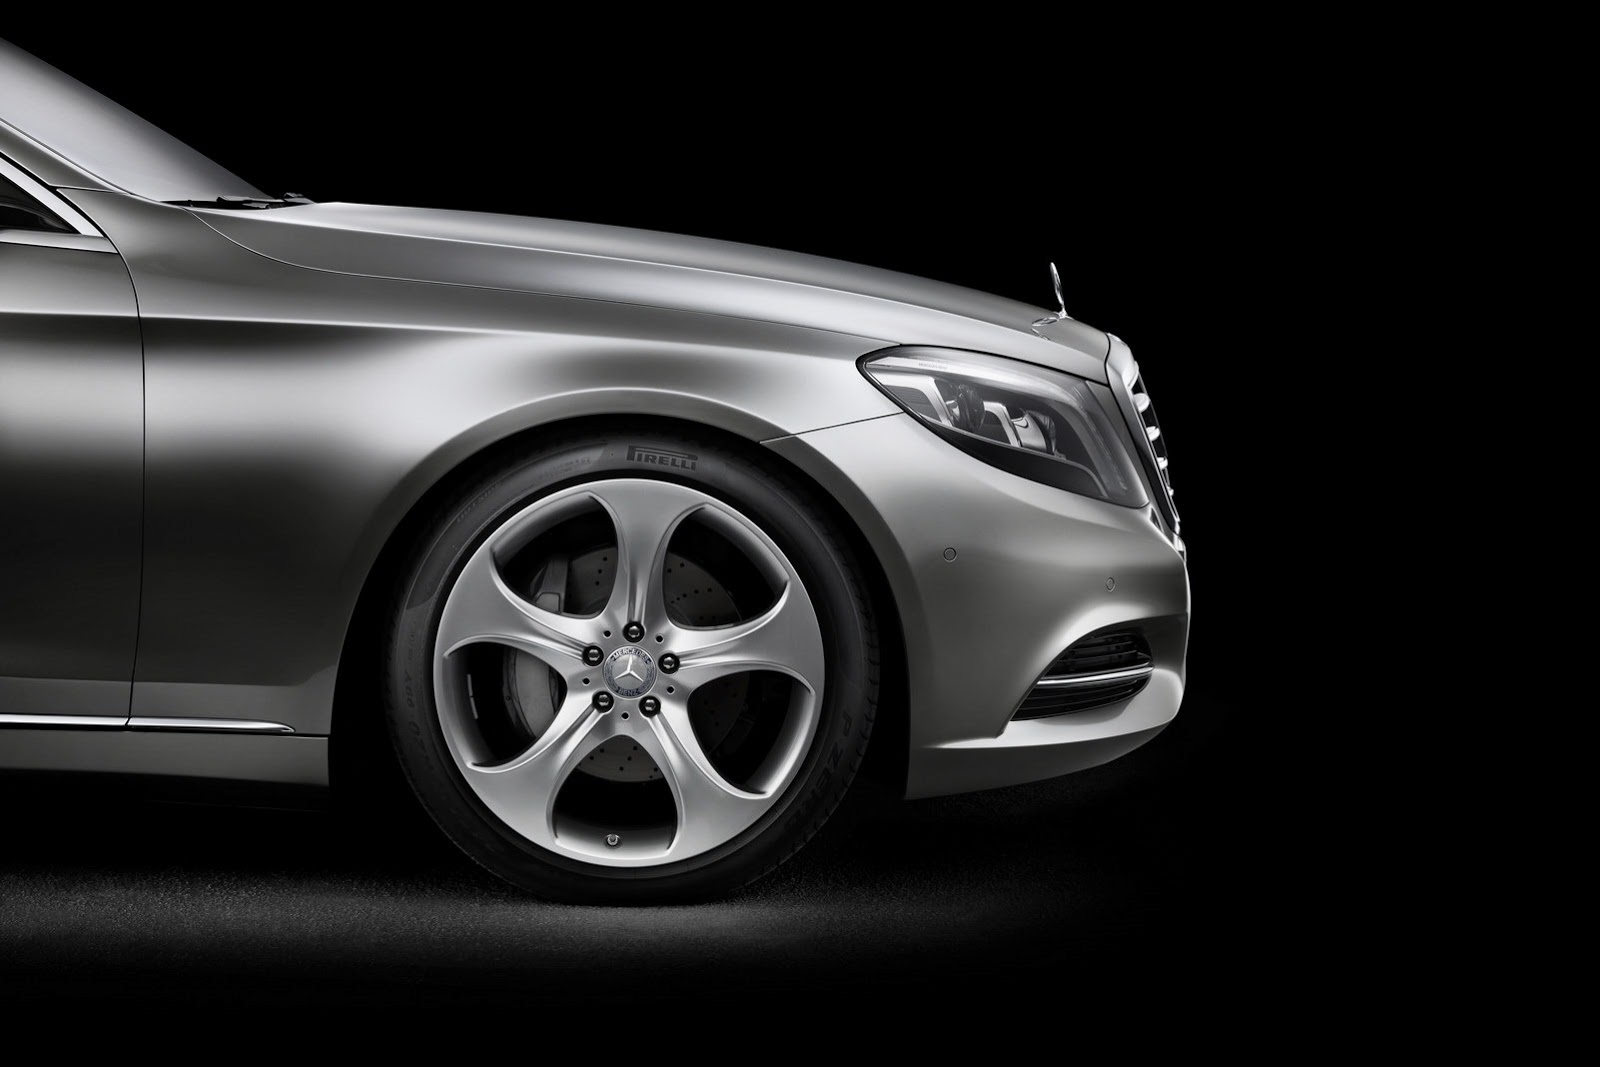 2014 Mercedes Benz S-Class - SMADE MEDIA (1)